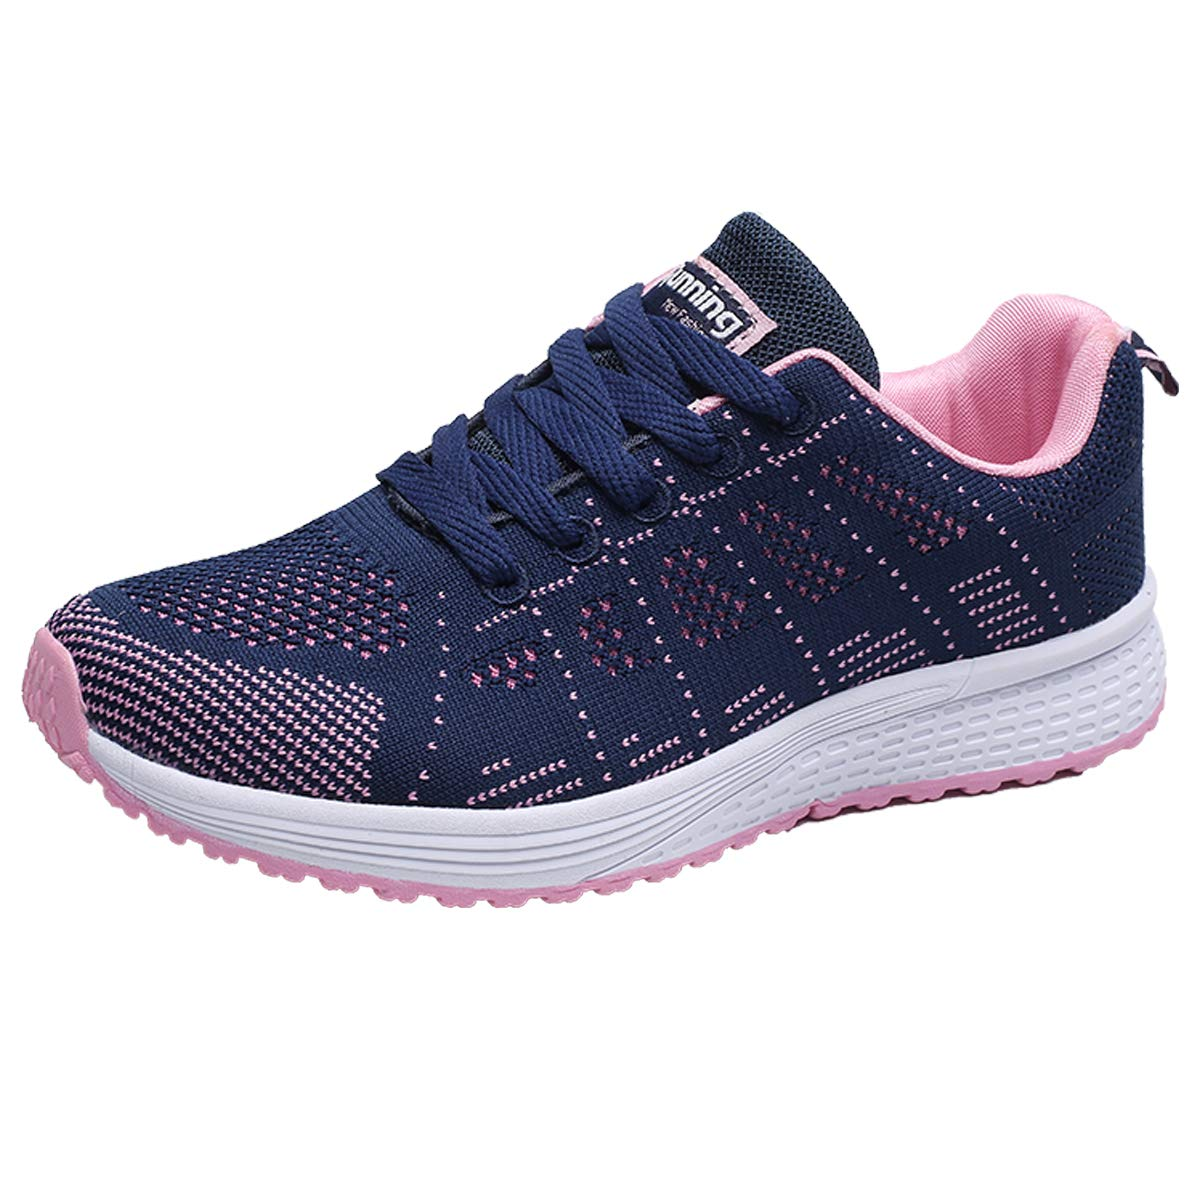 xuanyu Women Gym Shoes Lightweight Breathable Fashion Walking Sneakers Tennis Athletic Jogging Sport Fitness Golf Running Shoes